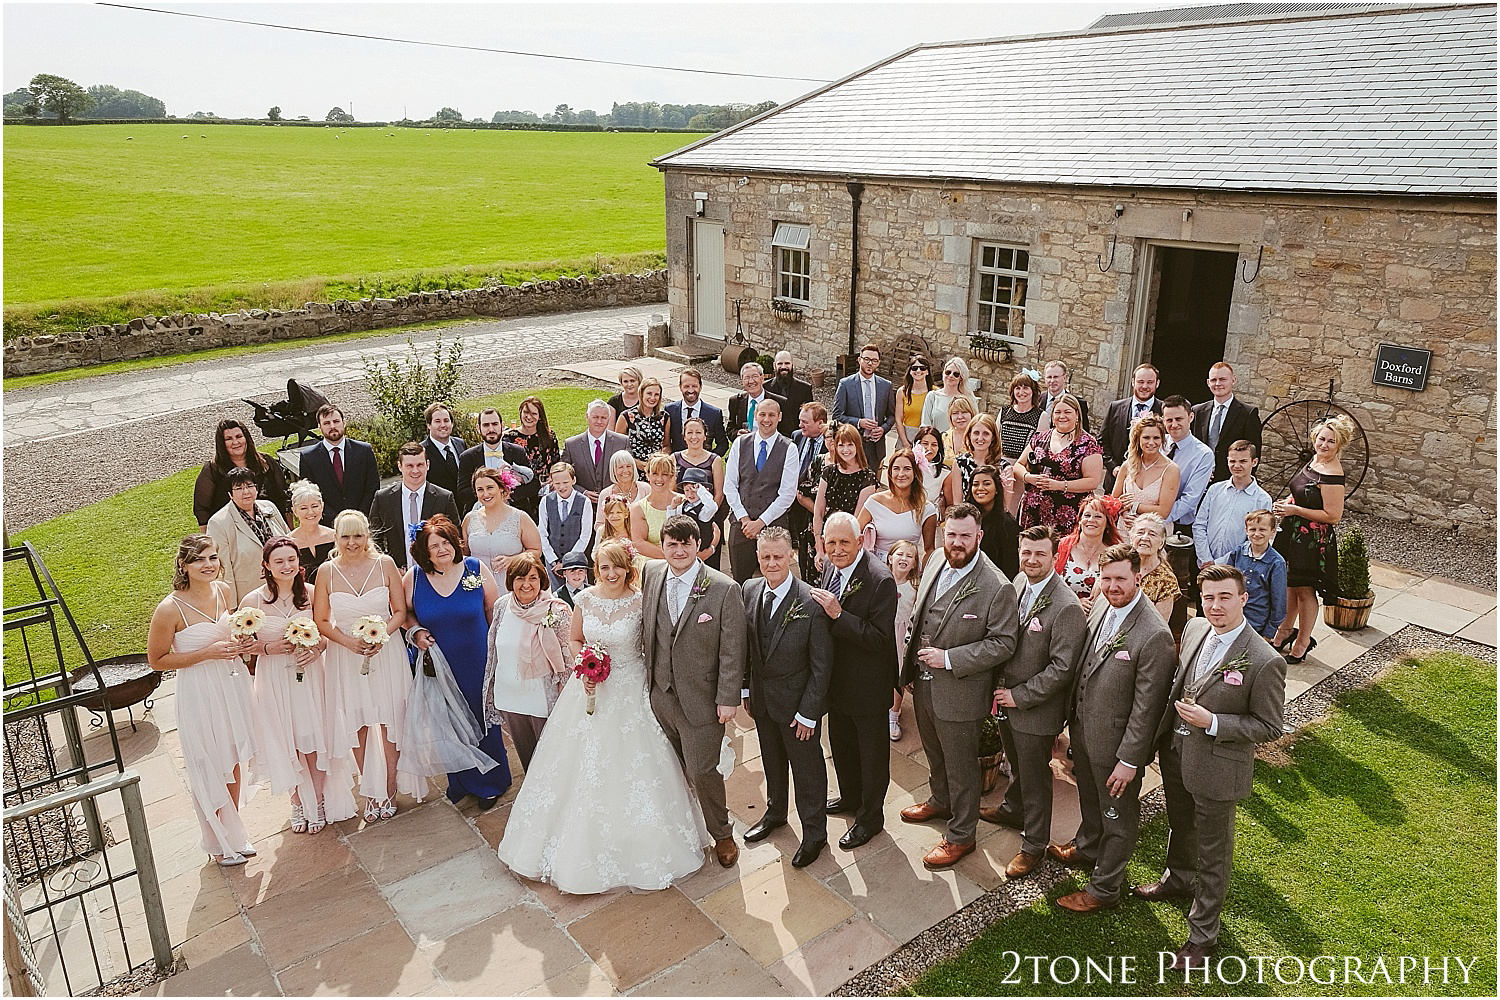 Doxford barns wedding photographer 044.jpg